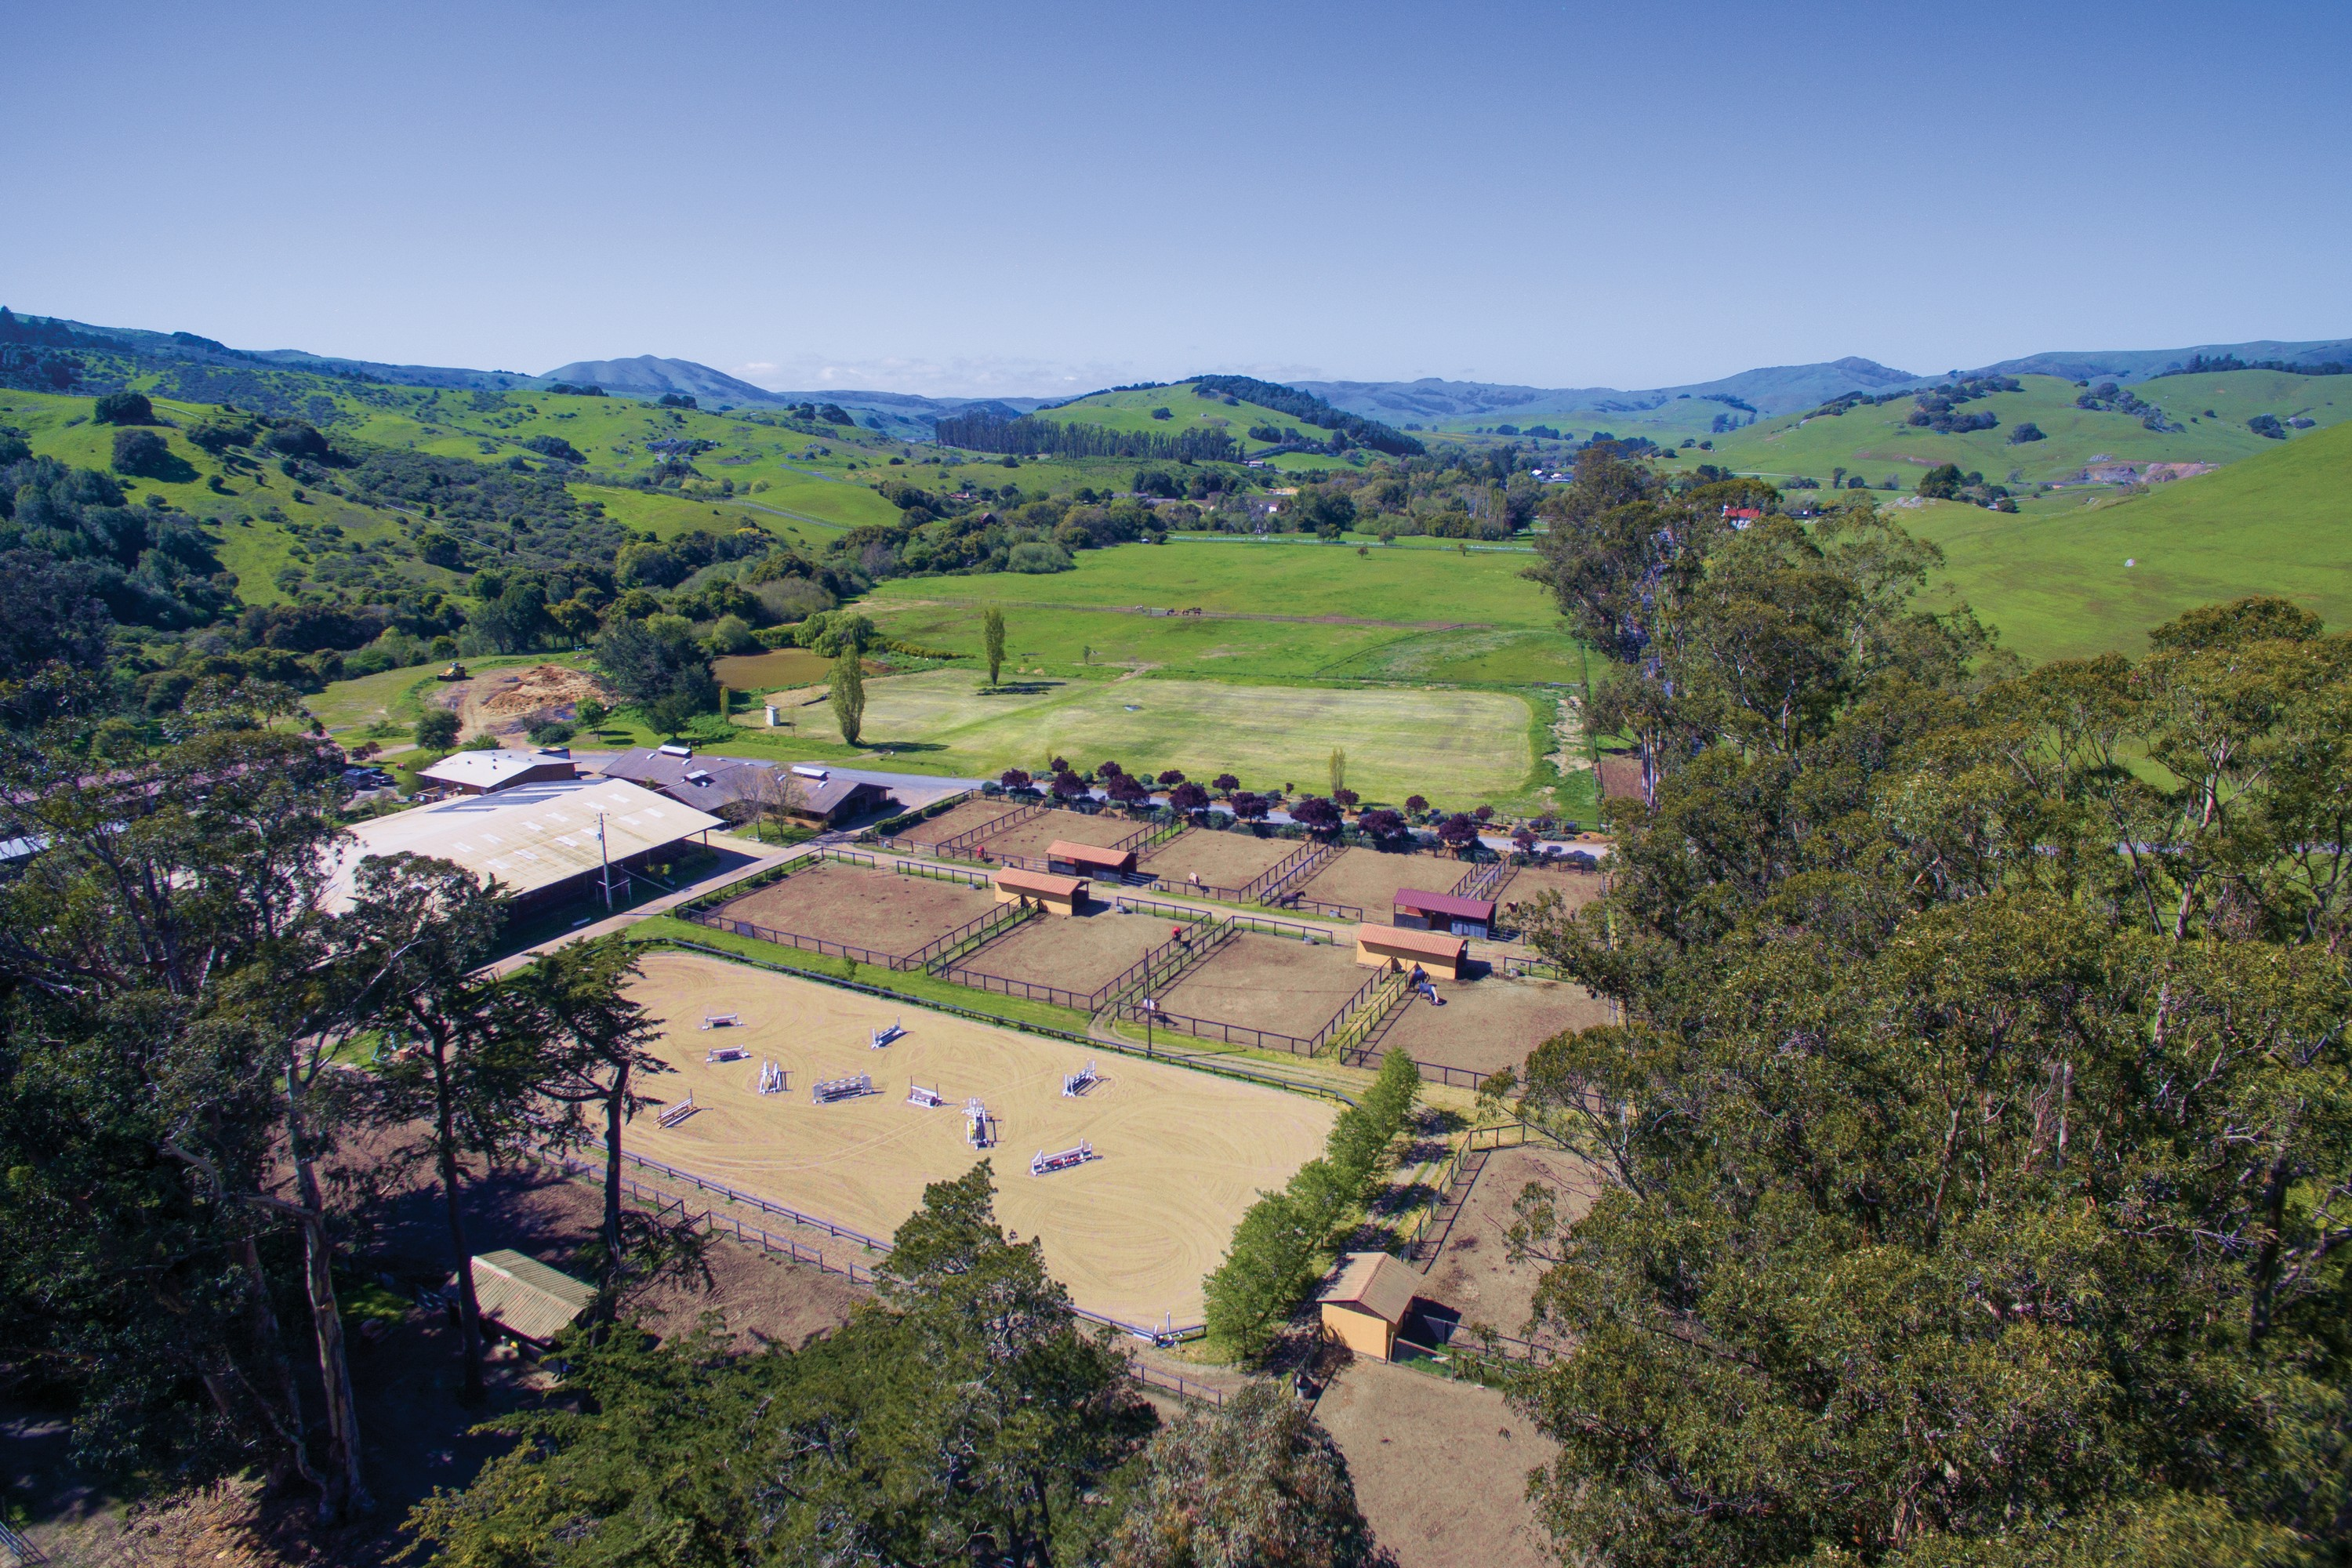 Ferme / Ranch / Plantation pour l Vente à Equestrian Estate 3431 Nicasio Valley Rd Nicasio, Californie 94946 États-Unis